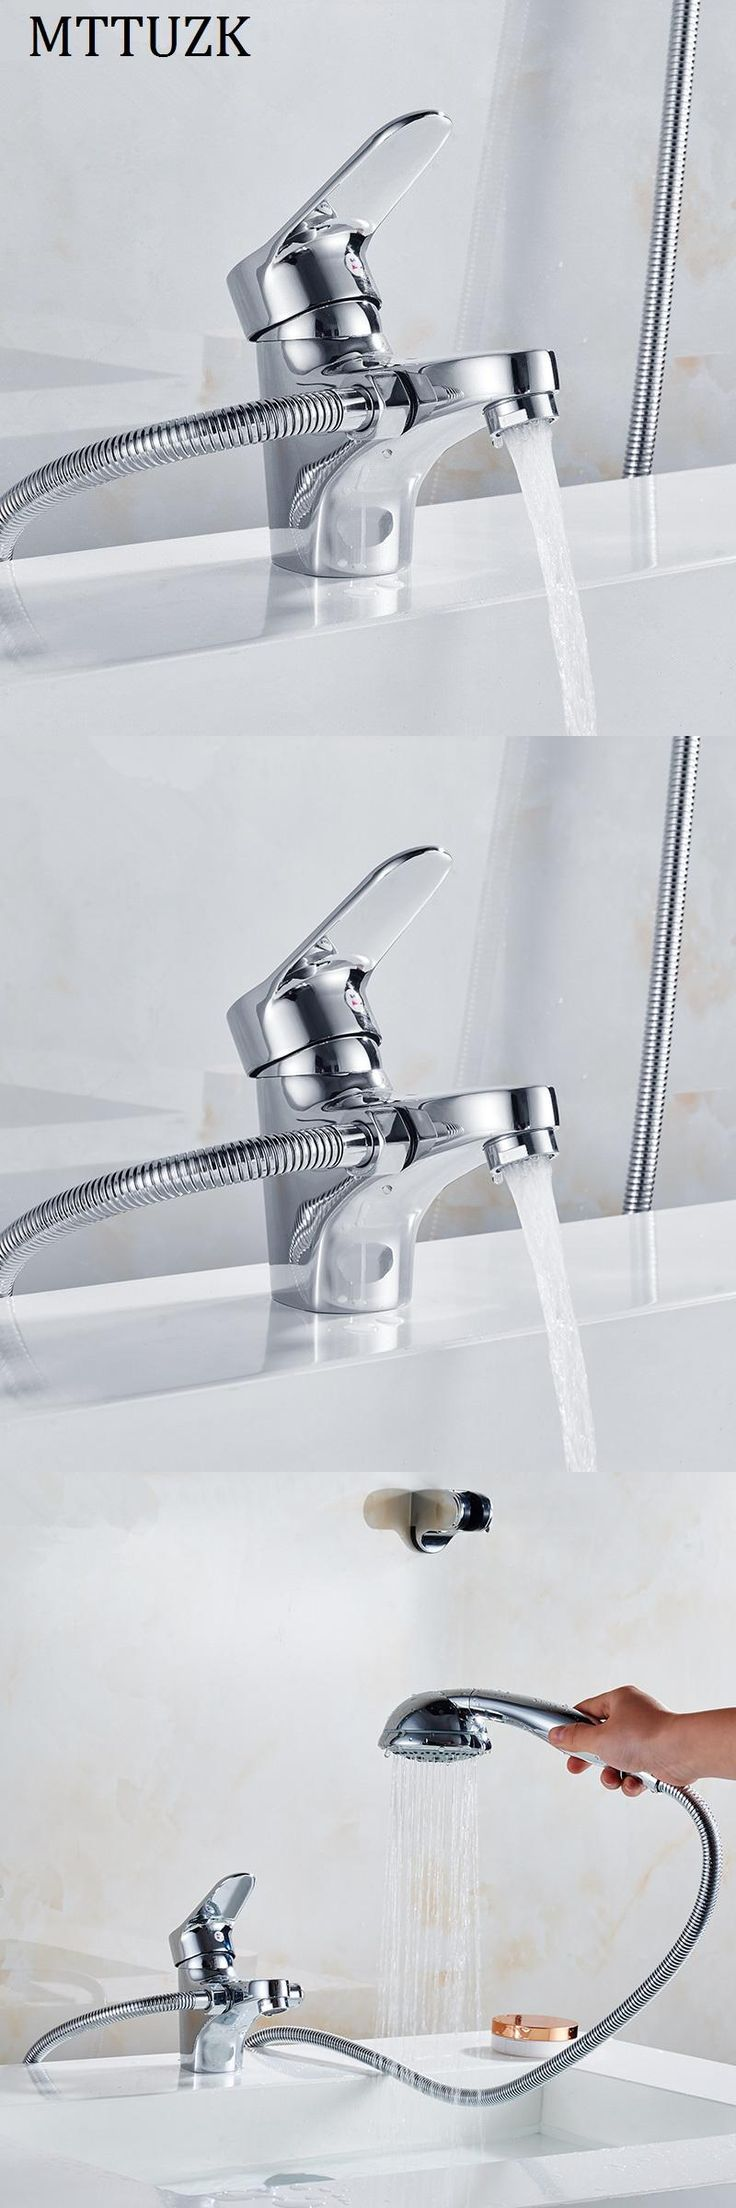 [Visit to Buy] MTTUZK Chrome Brass Shower Set Hot and Cold  Mixer Double Handle Shower Deck Mounted Bathtub Faucet Shower Set Free Shipping #Advertisement